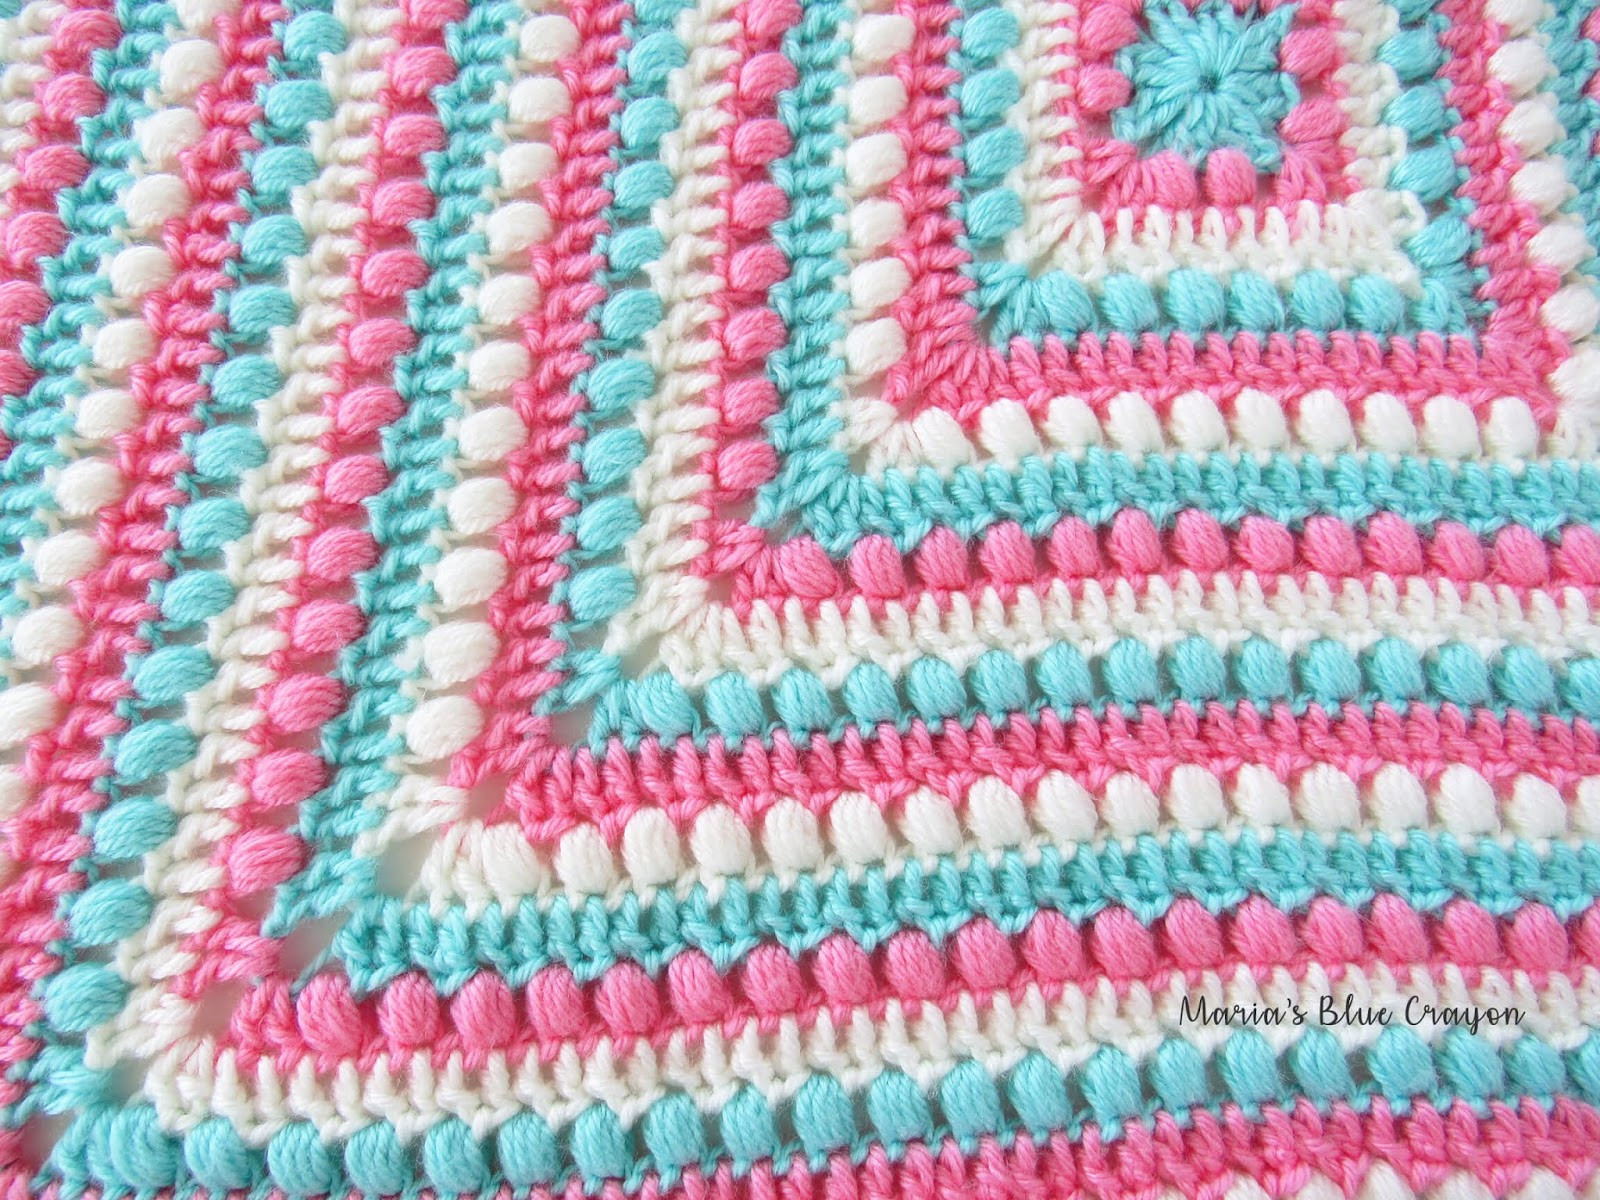 Crochet Granny Square Blanket Pattern Awesome Bobbles and Stripes Granny Square Blanket Free Easy Of Brilliant 48 Ideas Crochet Granny Square Blanket Pattern